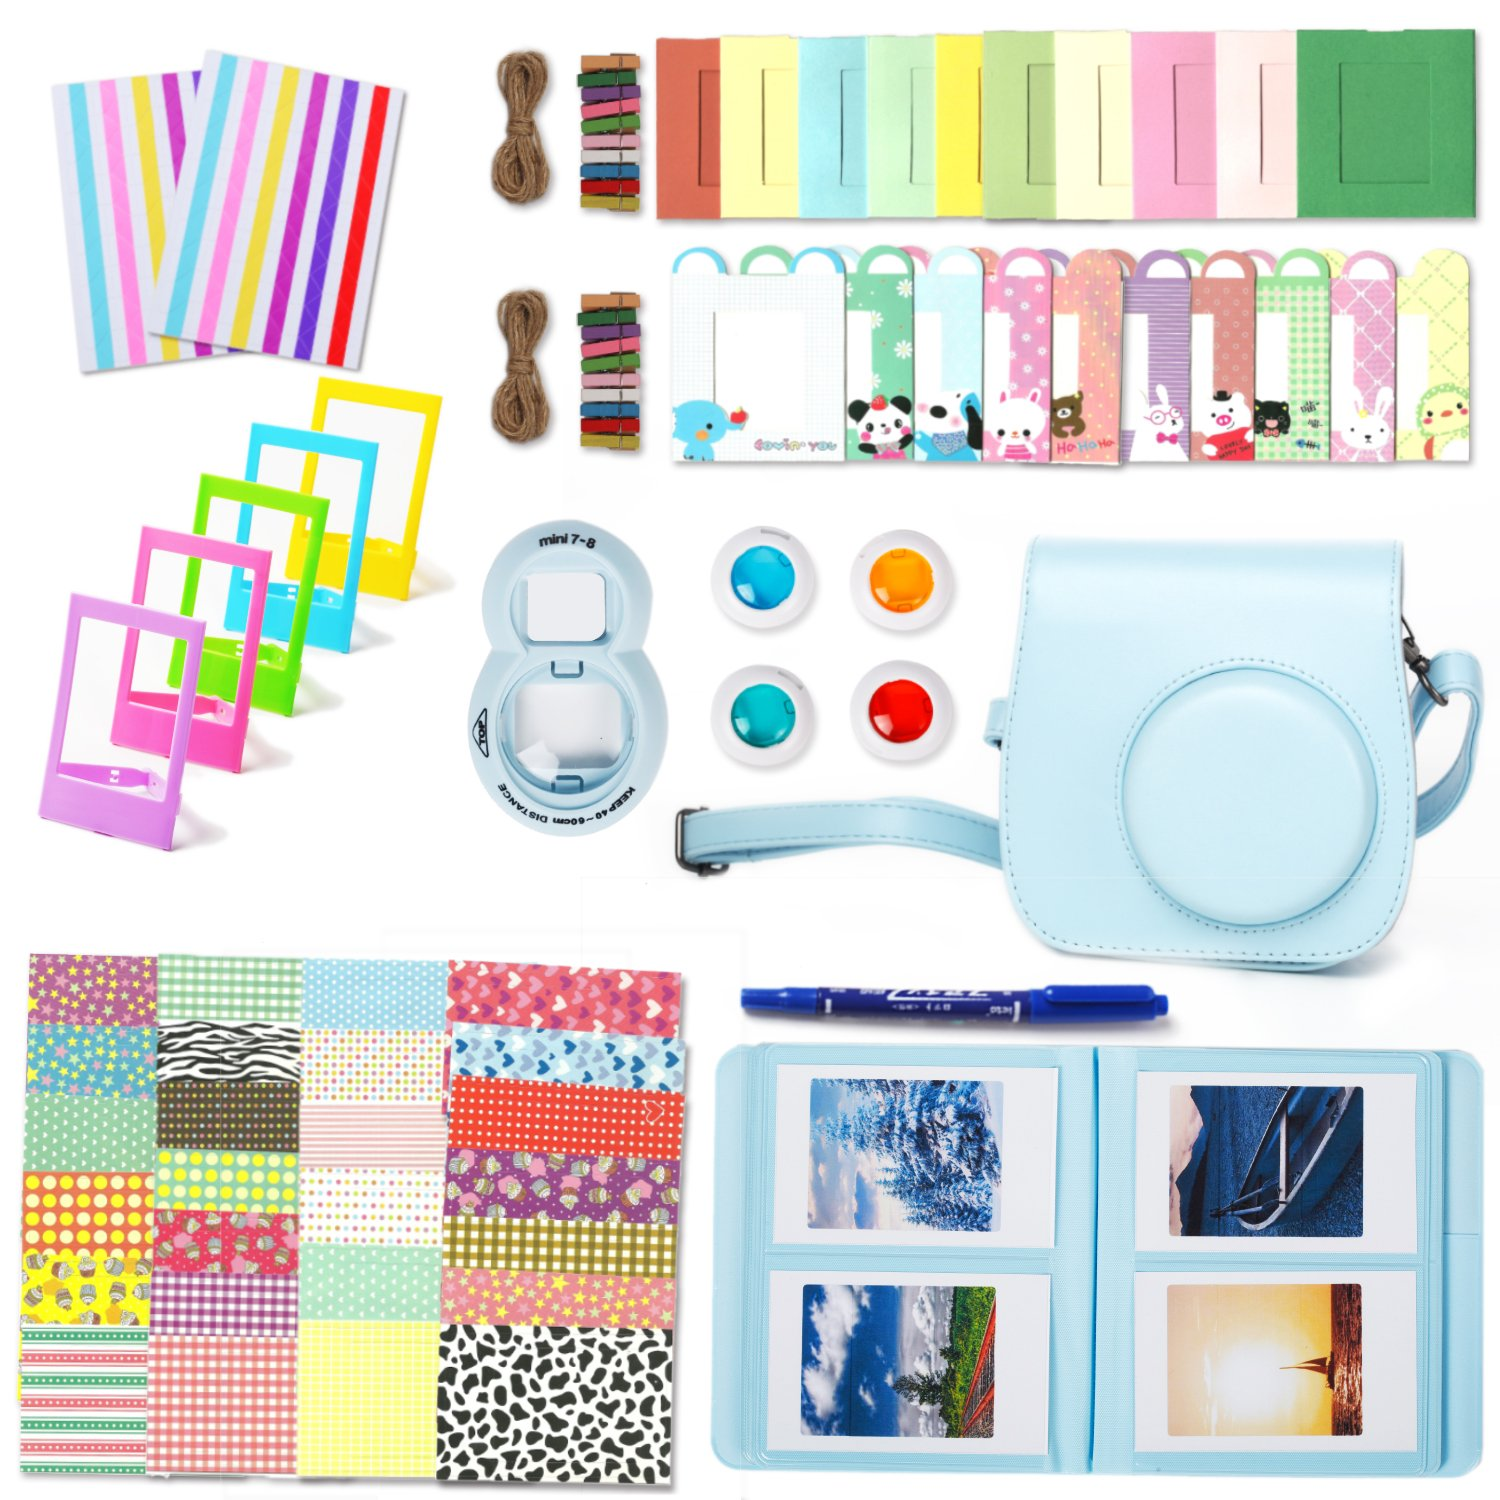 Leebotree Camera Accessories Compatible with Fujifilm Instax Mini 9 or Mini 8 8+ Include Case/Album/Selfie Lens/Filters/Wall Hang Frames/Film Frames/Border Stickers/Corner Stickers/Pen(Blue)